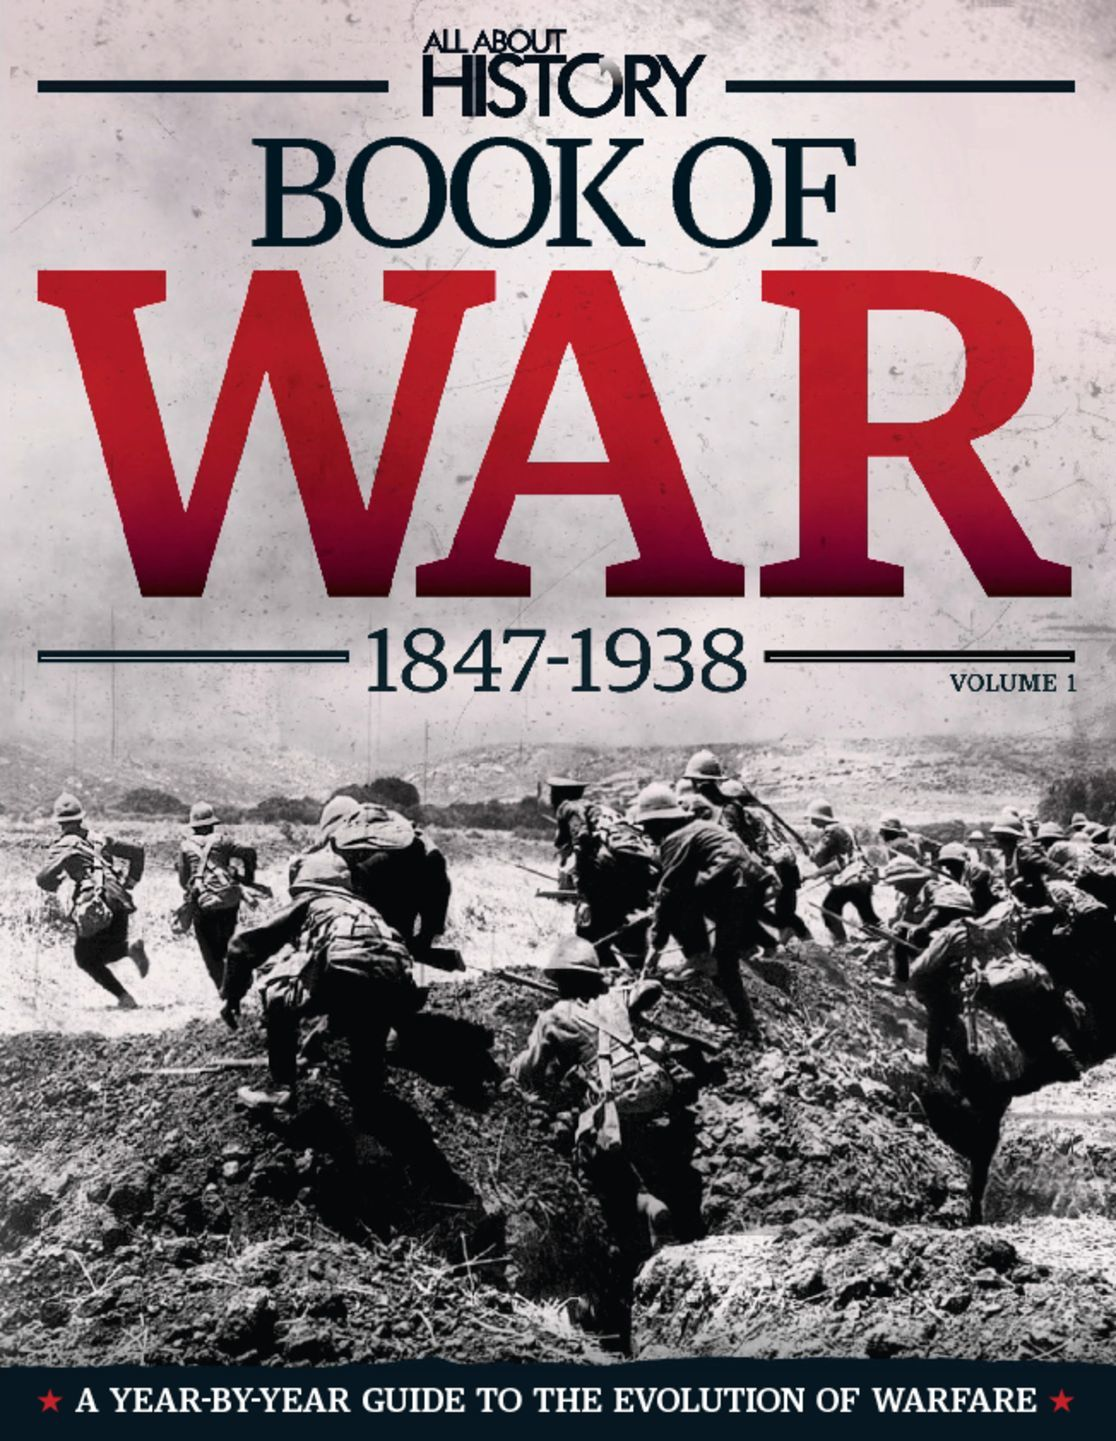 All About History Book of War Volume 1 (Digital)